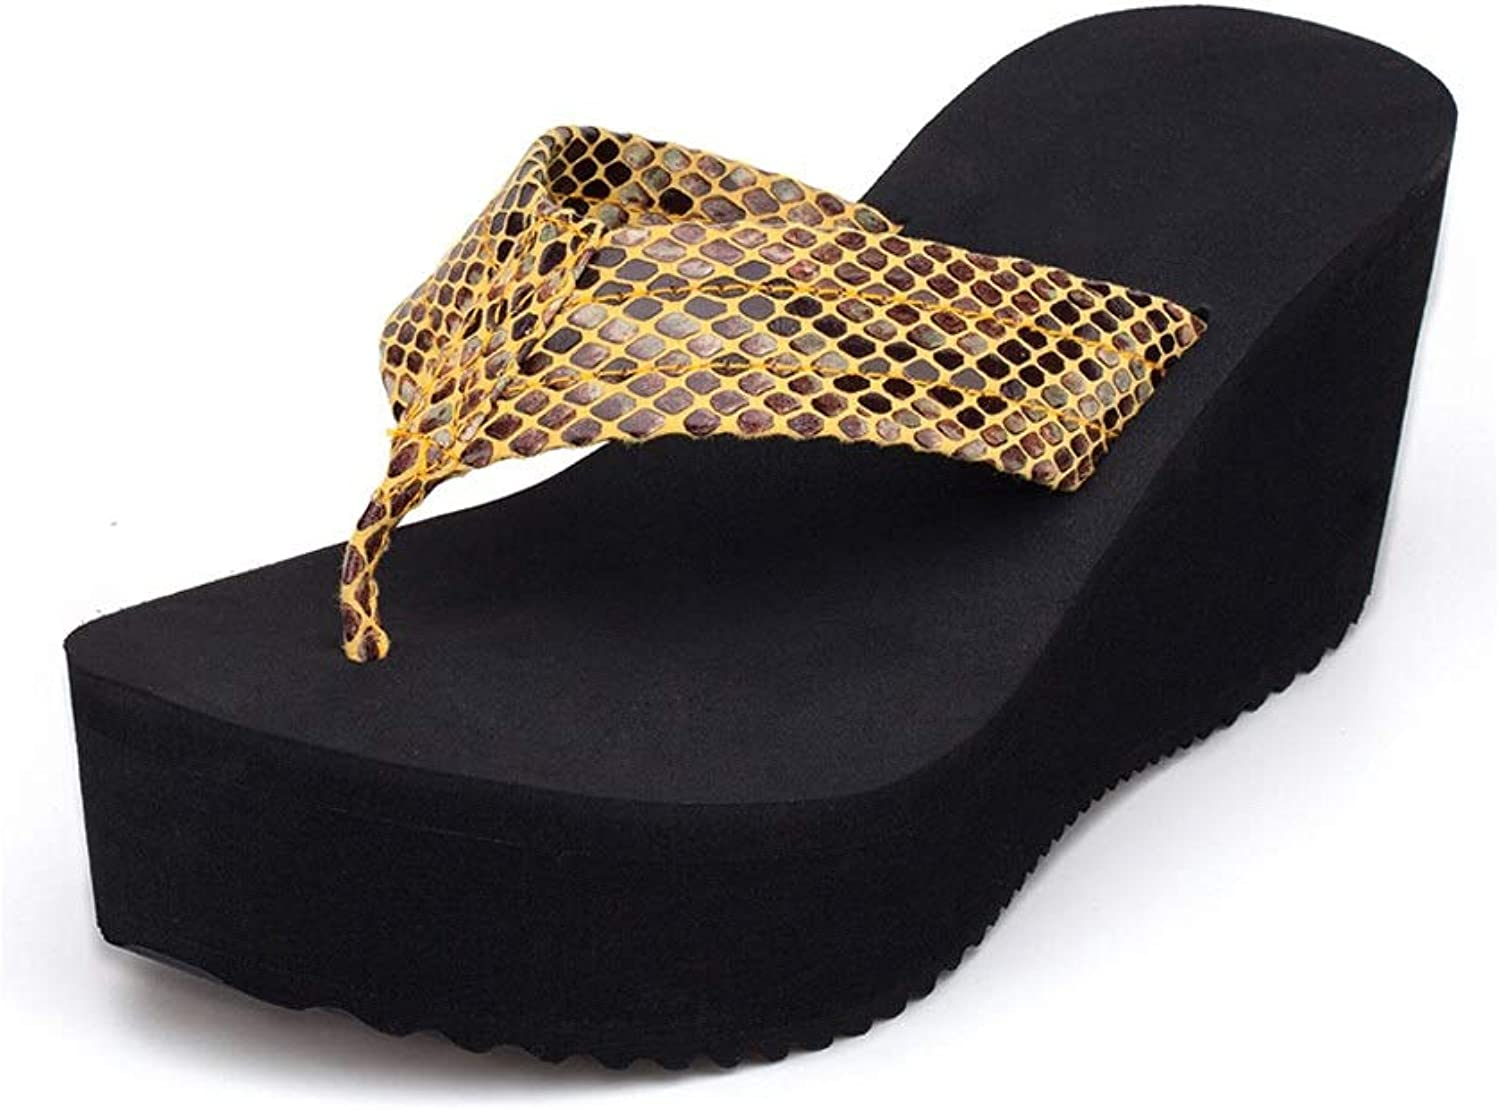 Fanxu Flip-Flops, Women's Summer High-Heeled Footrest Platform Anti-Skid Sandals and Slippers (3 colors 4 Yards) (color   Yellow, Size   5.5 US)